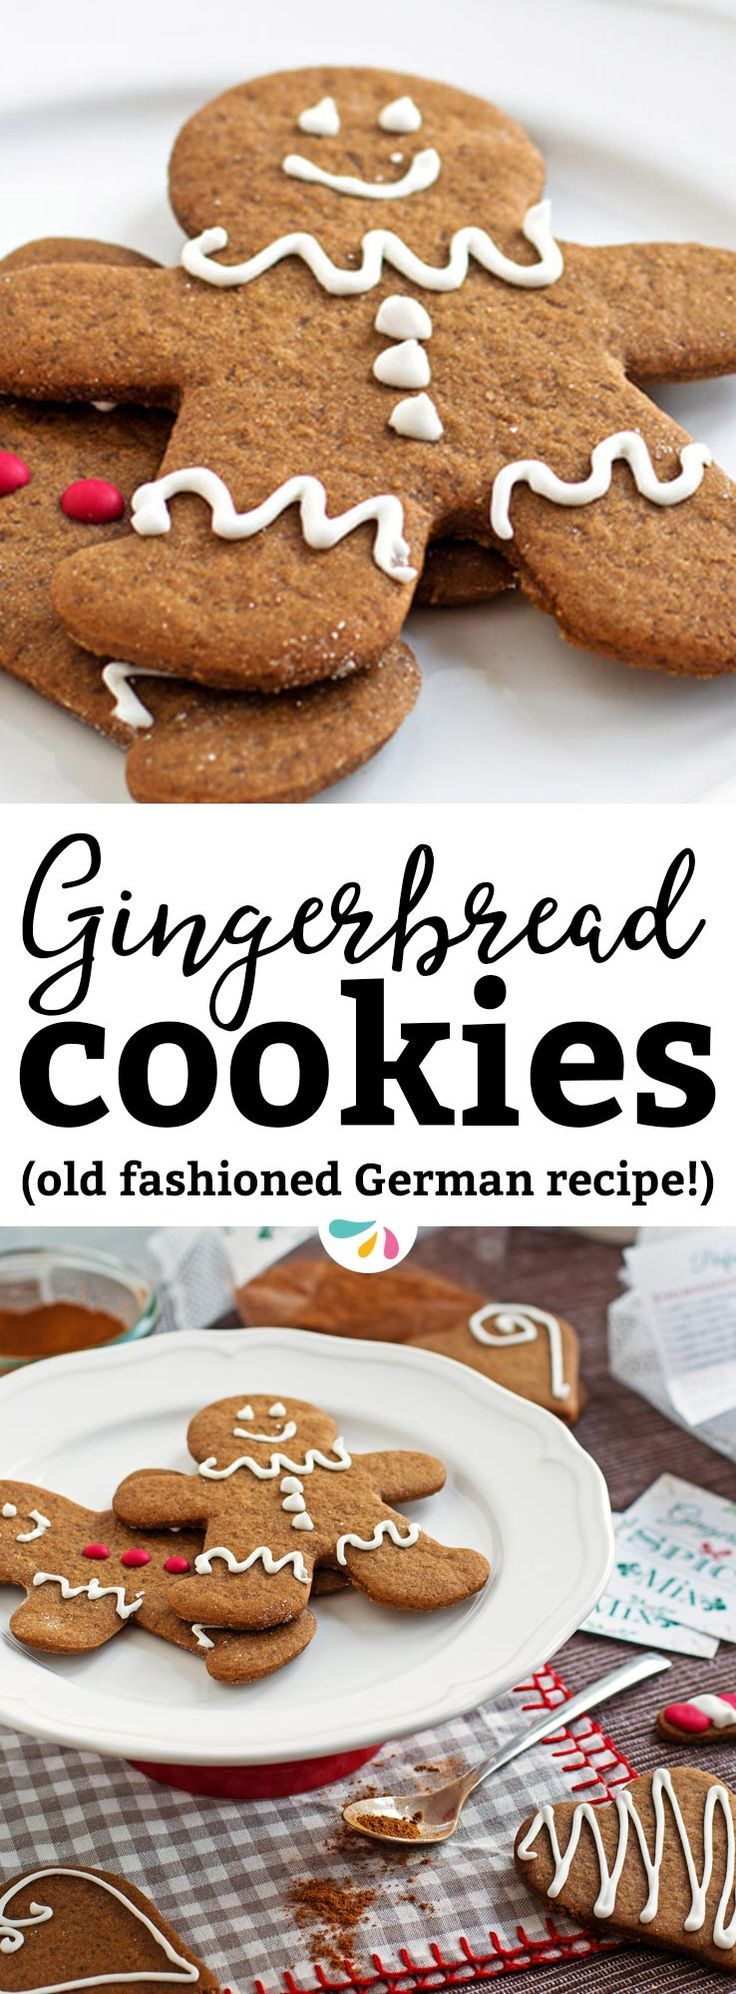 If you need an easy recipe for chewy and soft gingerbread cookies from scratch, this is it! I've broken down the traditional German Christmas classic for busy moms. The homemade dough is simple to put together so you have more time to add cute icing or frosting decorations to the gingerbread men with the kids! A great holiday baking recipe. | #christmas #christmascookies #gingerbread #gingerbreadcookie #gingerbreadmen #recipes #holidays #holidayrecipes #food #christmasfood #christmasbaking